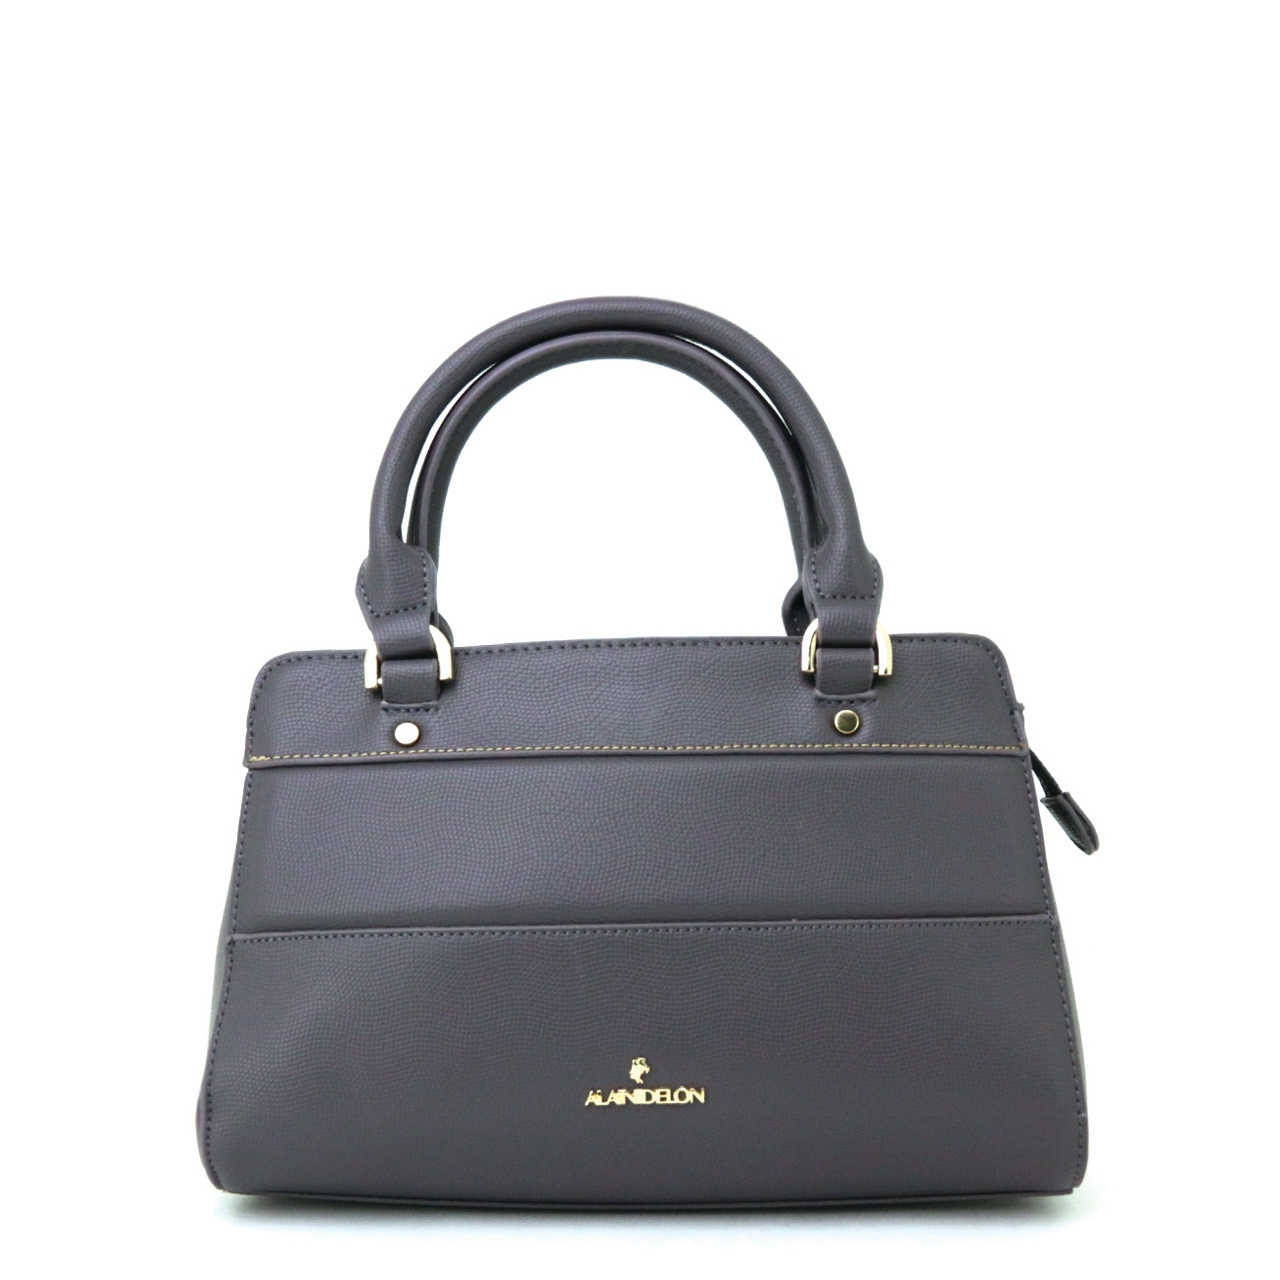 Alain Delon Classic Plain Shoulder Bag 3 1